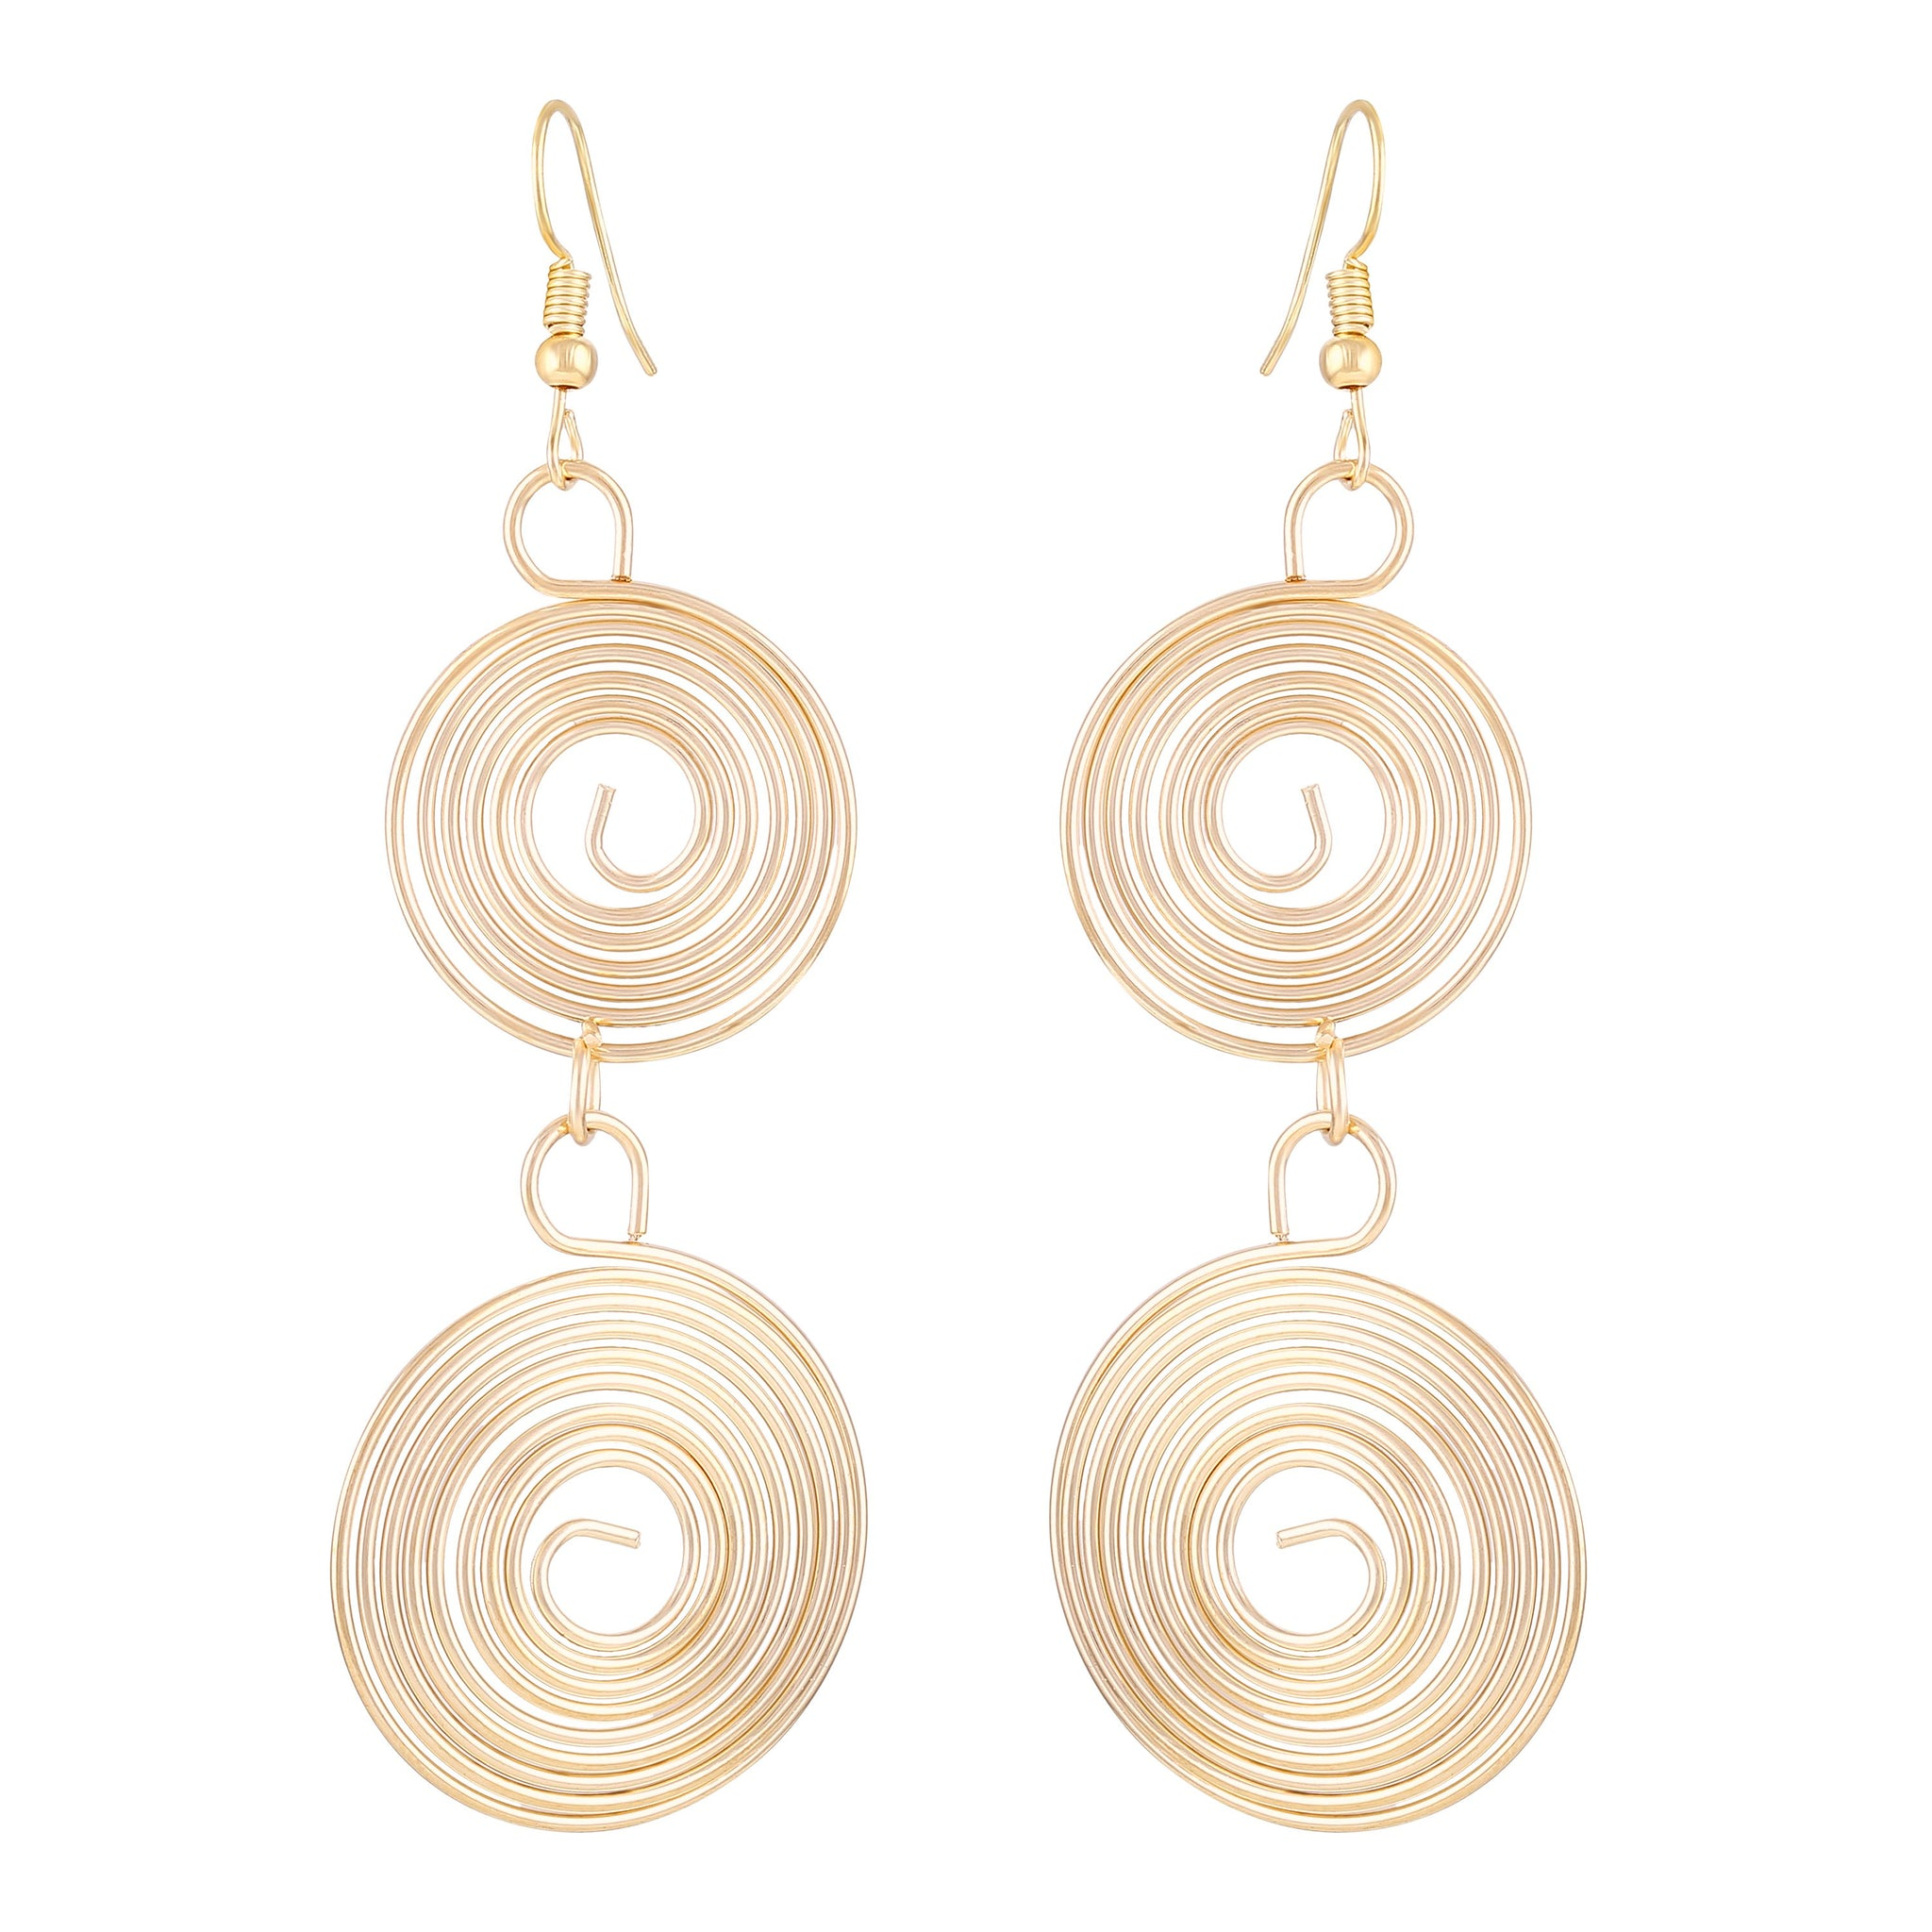 Asmitta Delightly 2 Round Shape Gold Plated Drop Earring For Women